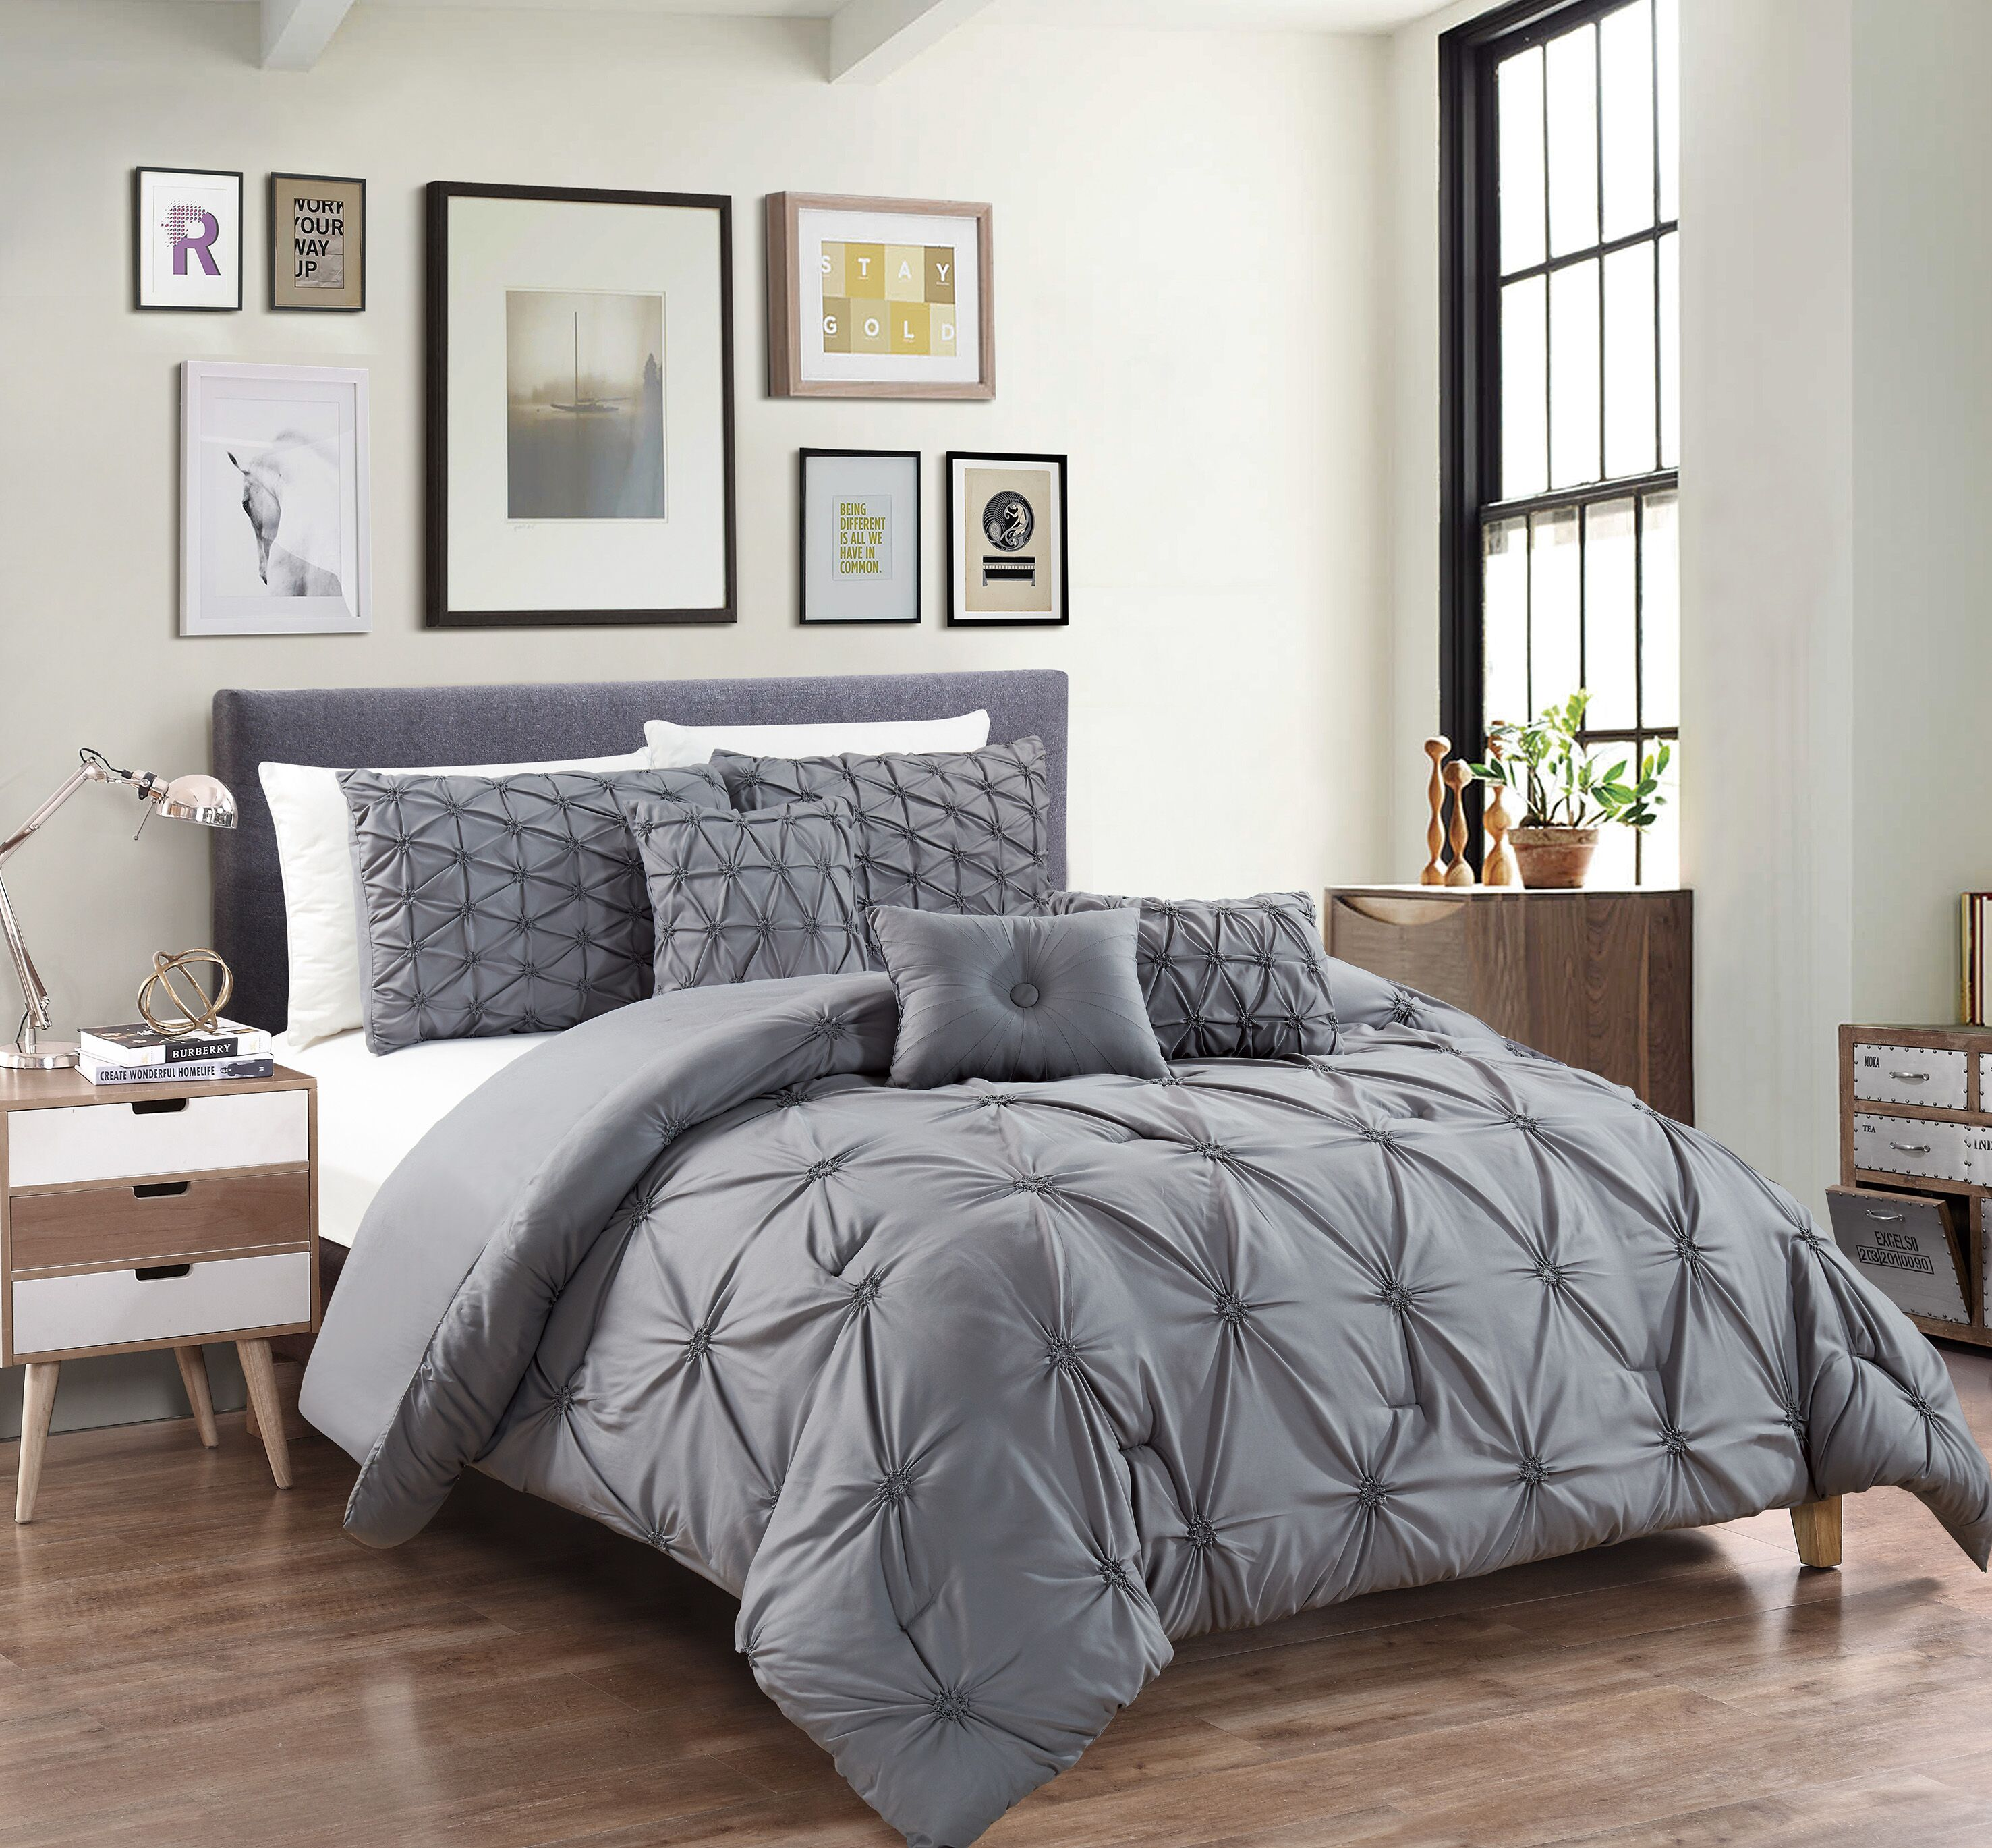 Empire Home Davina 6-piece Comforter Set New Arrival Sale - Gray - Queen SIze